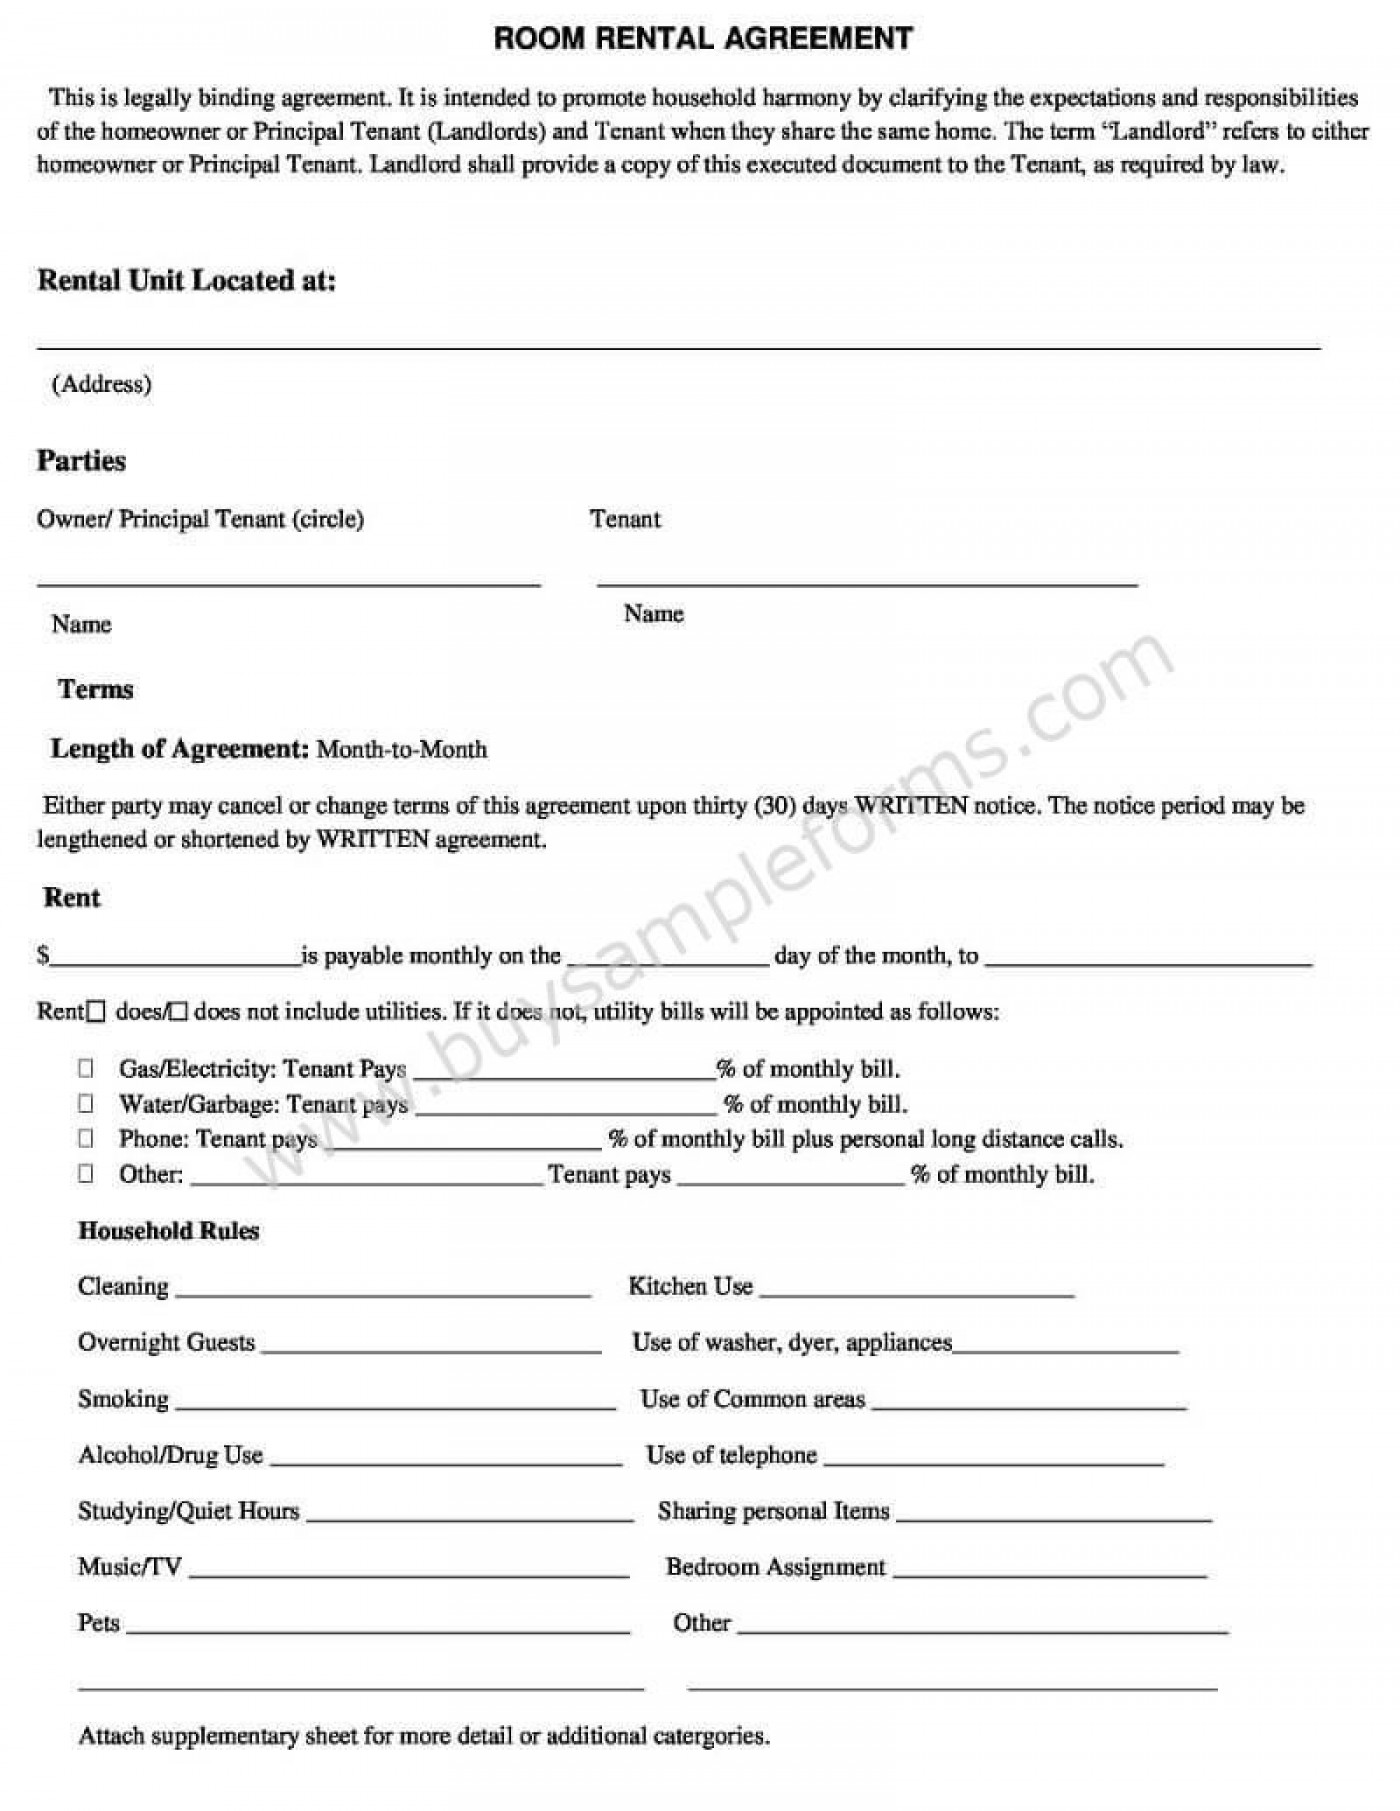 008 Incredible Template For Rental Agreement Example  Lease Sample House Car1400